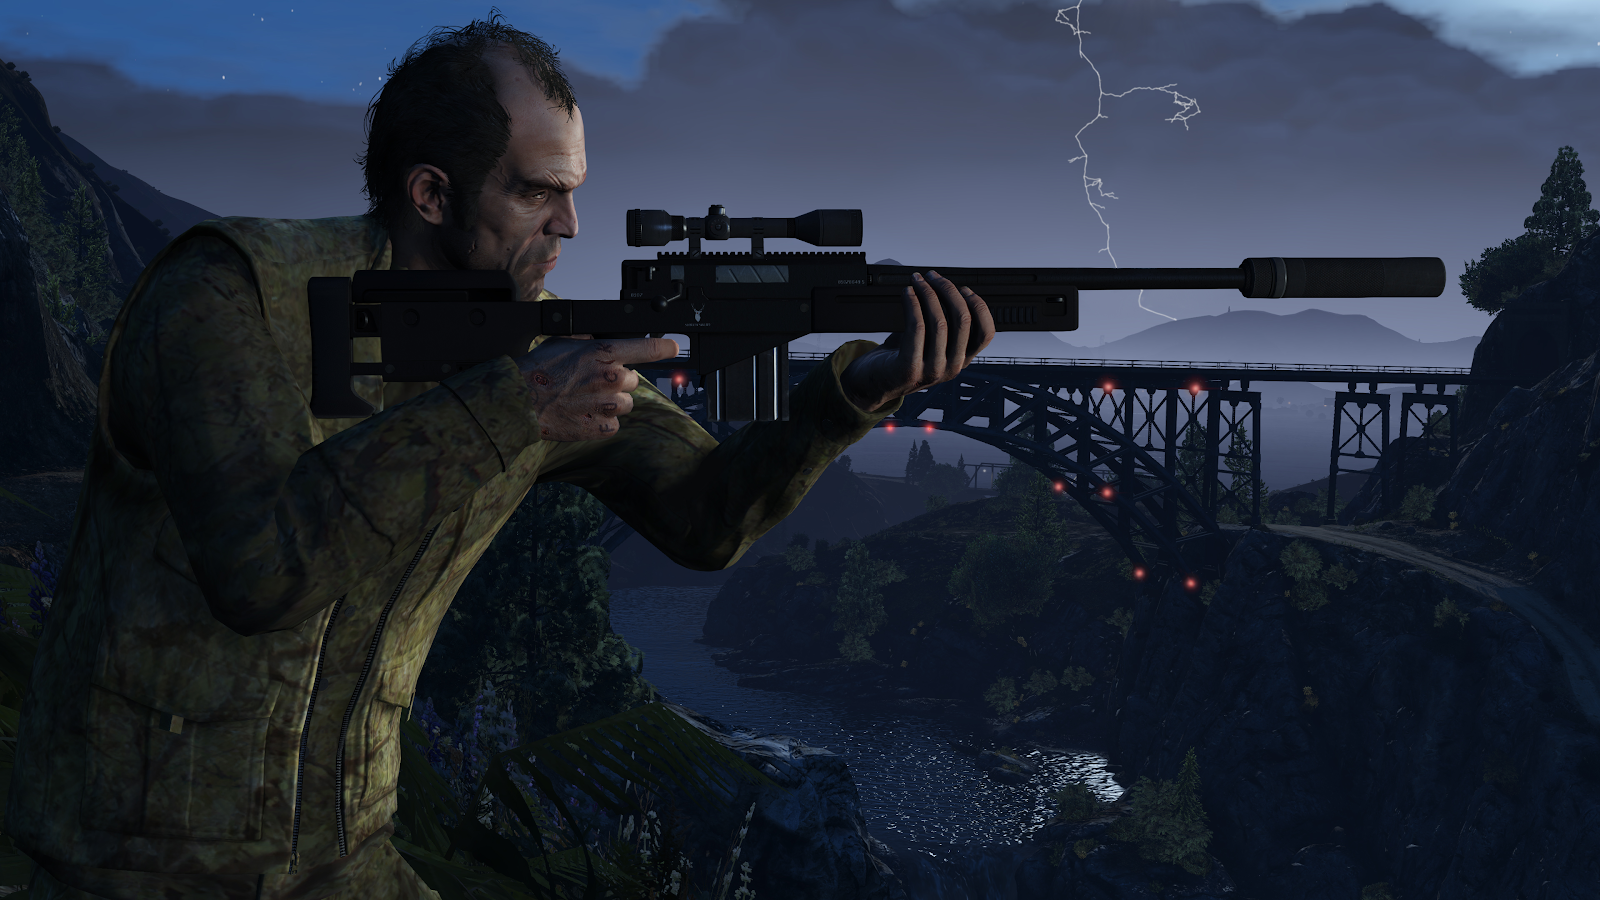 Modders Keep Finding Ways To Make GTA 5's Violence More Intense